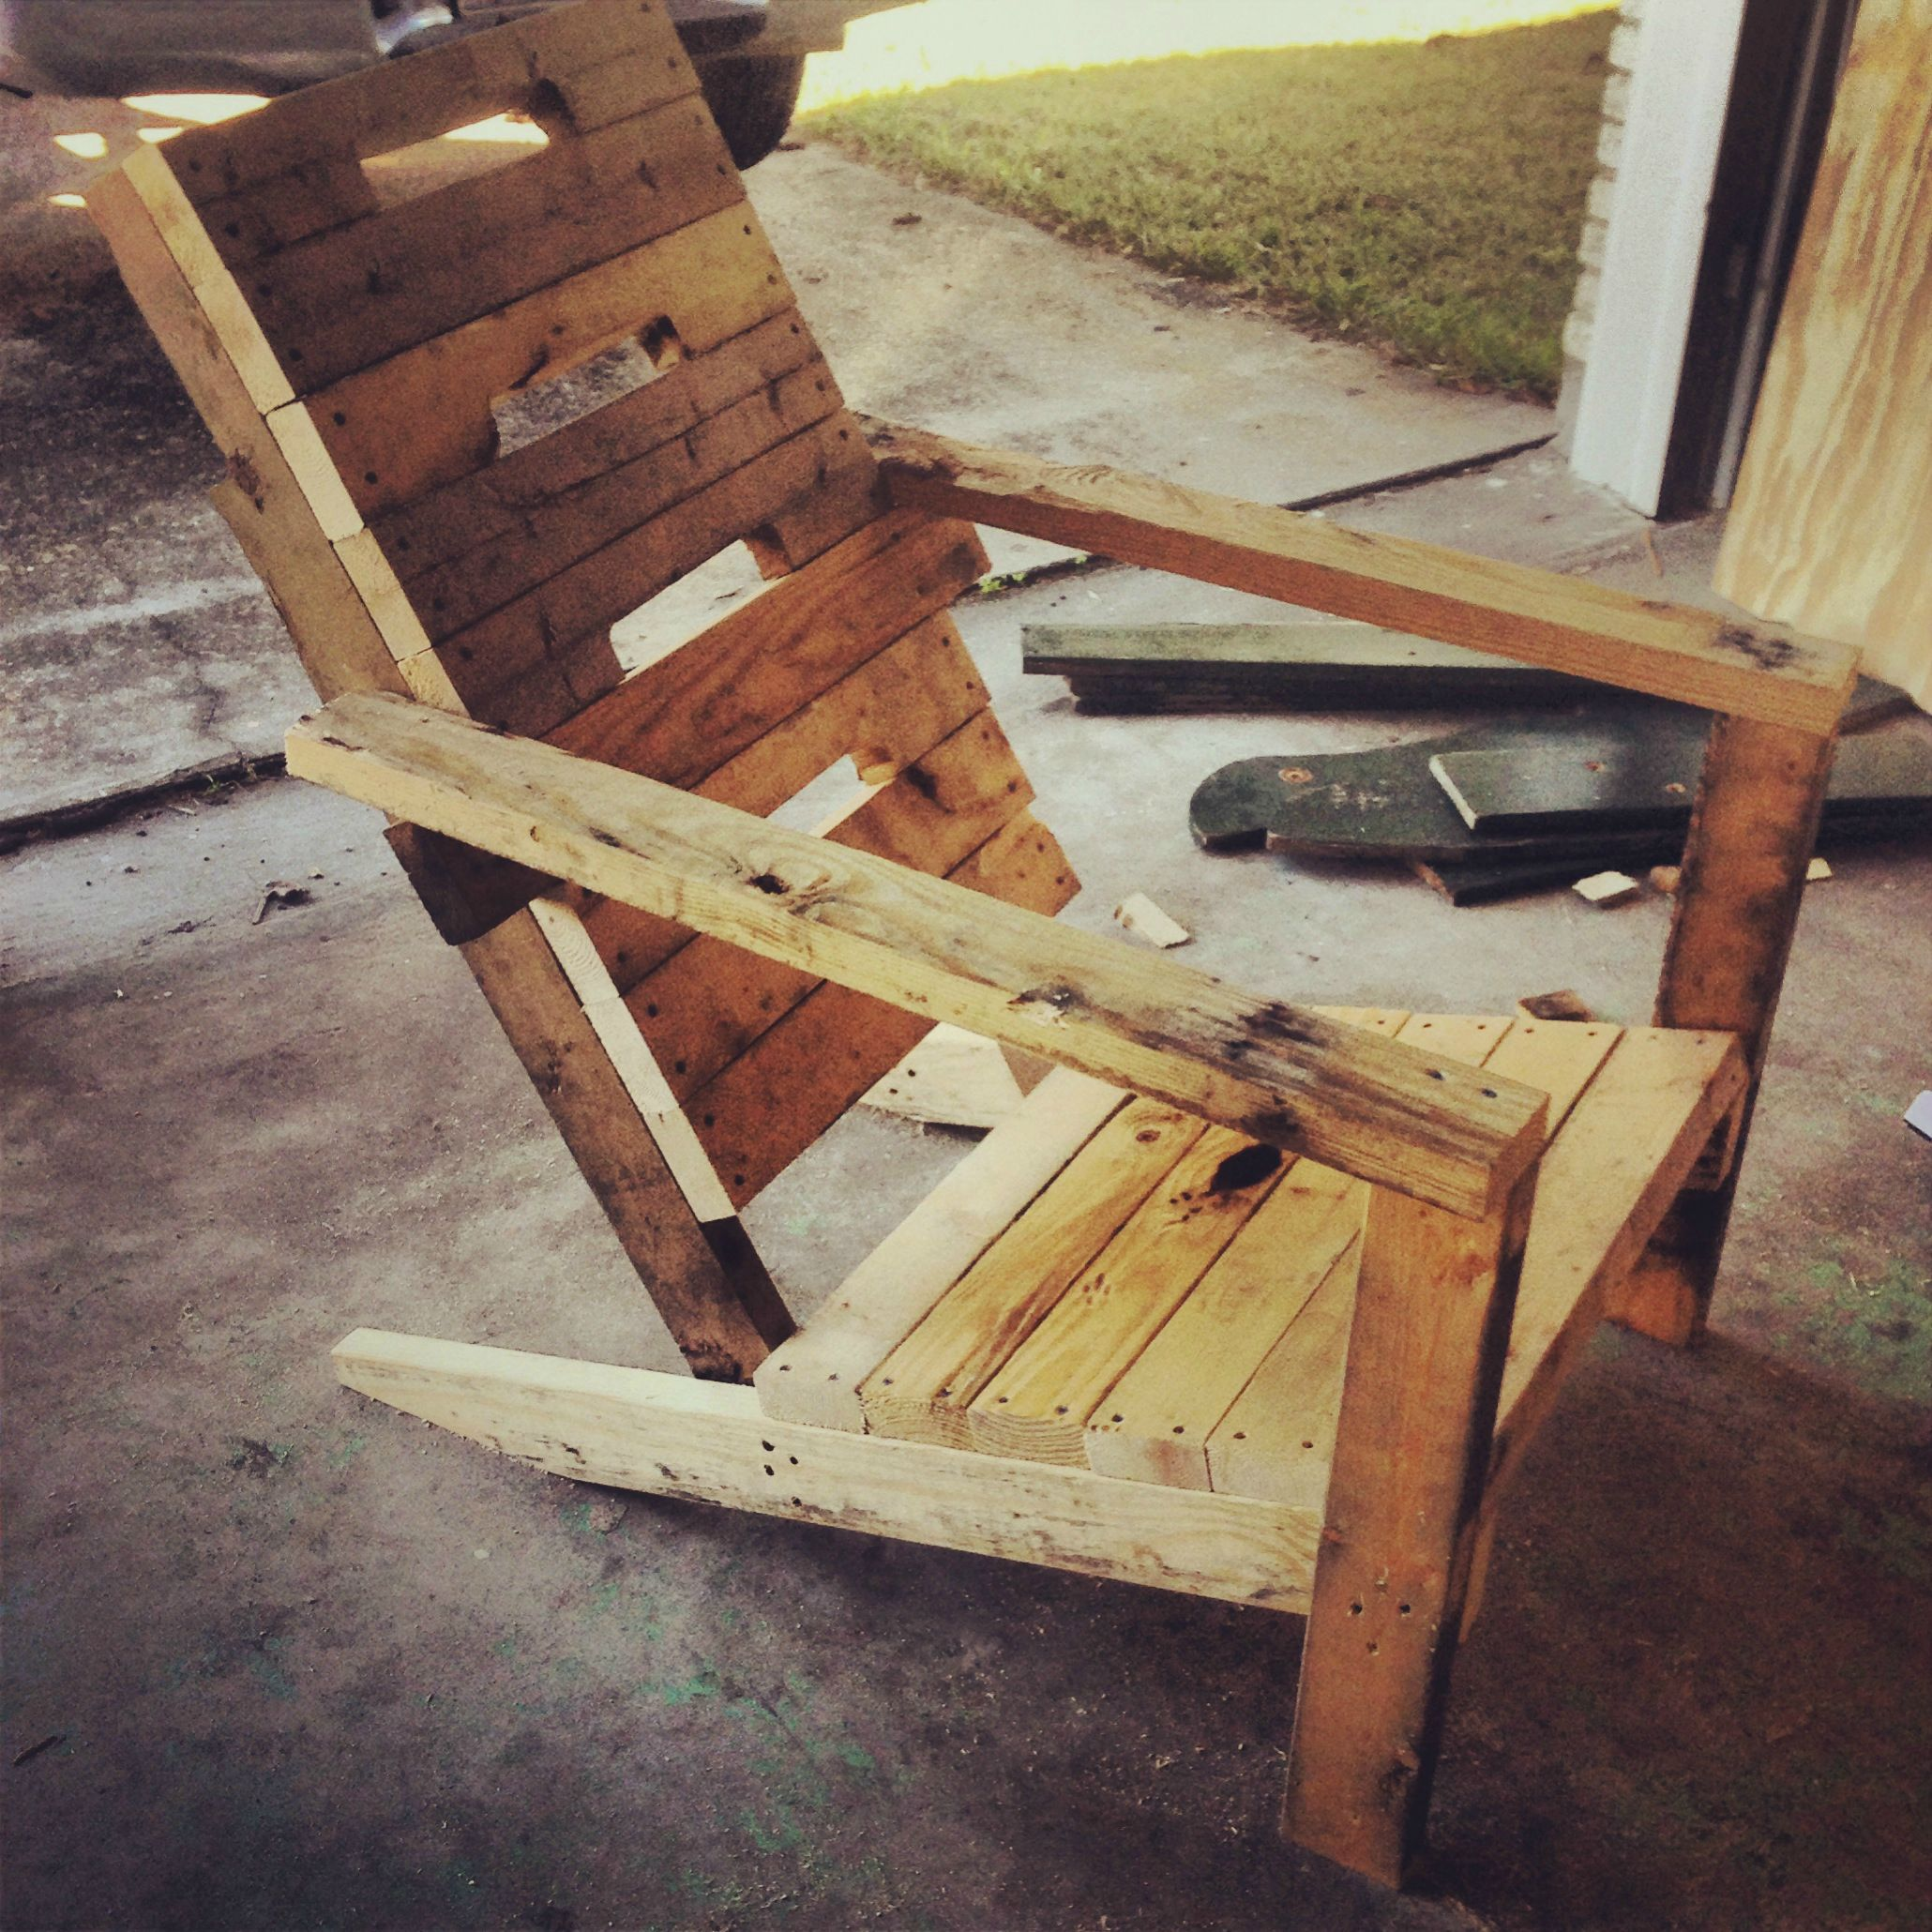 33 Insanely Smart and Creative Wooden Pallets Recycling Ideas Worth Doing usefuldiyprojects.com decor (32)